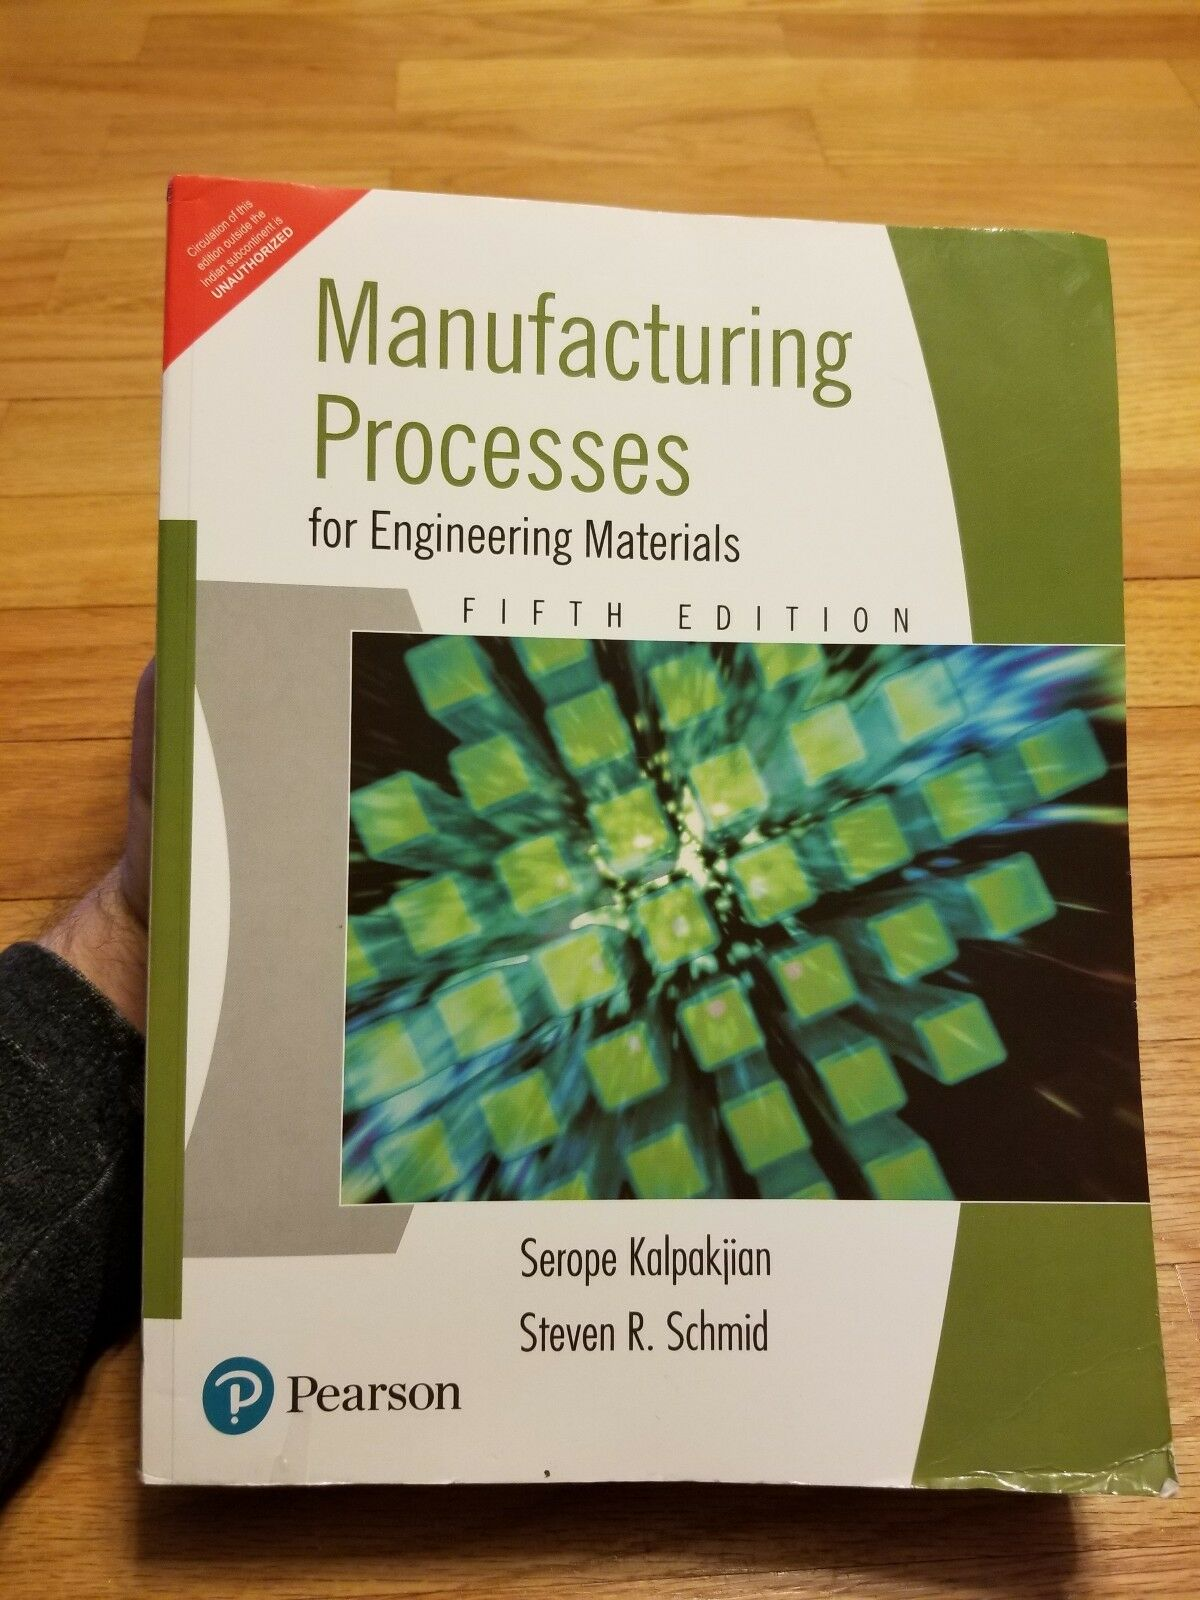 Manufacturing Processes for Engineering Materials by Serope Kalpakjian and  Steven R  Schmid (2007, Hardcover)